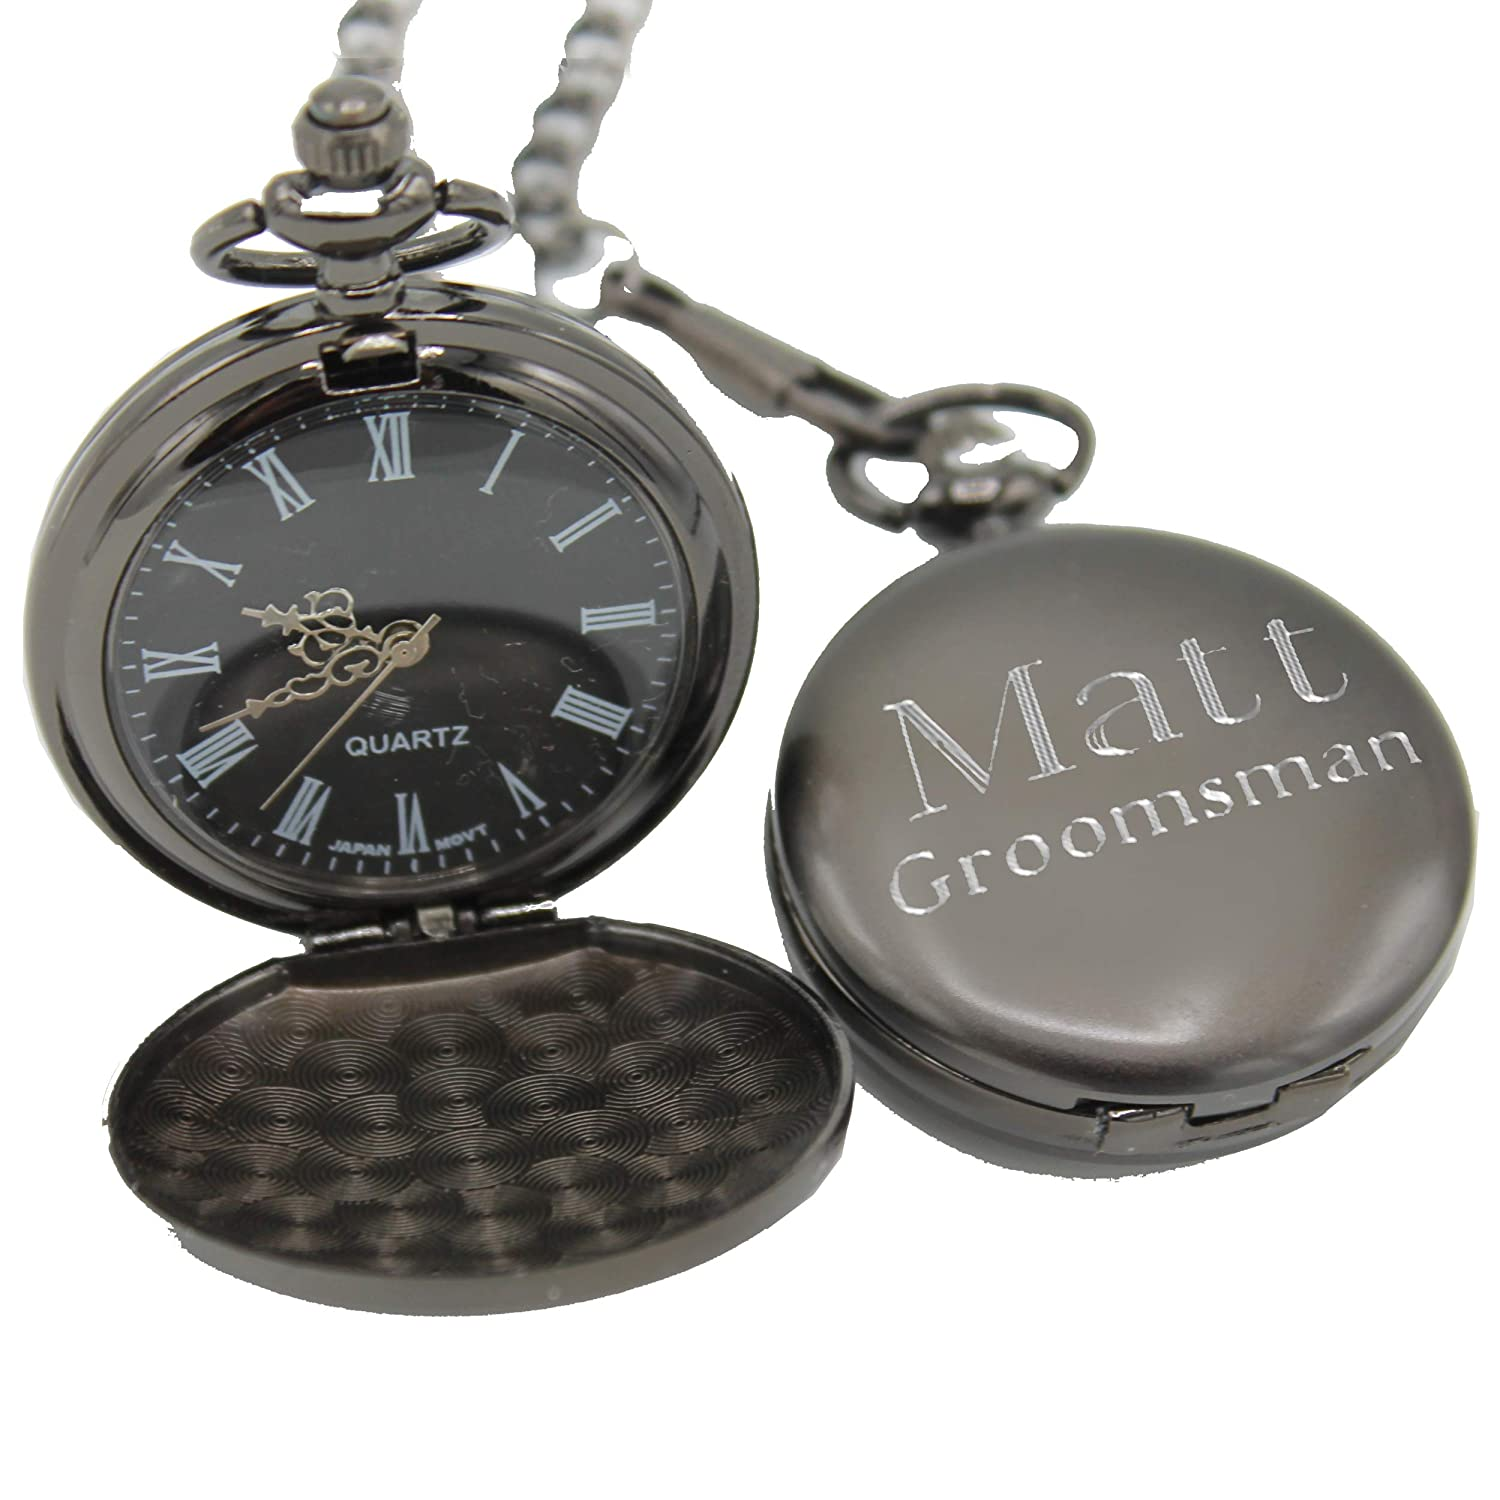 eab60b0cb Amazon.com: Personalized Gunmetal Quartz Pocket Watch with Chain - Groomsmen  Wedding Party Gifts - Engraved for Free: Watches